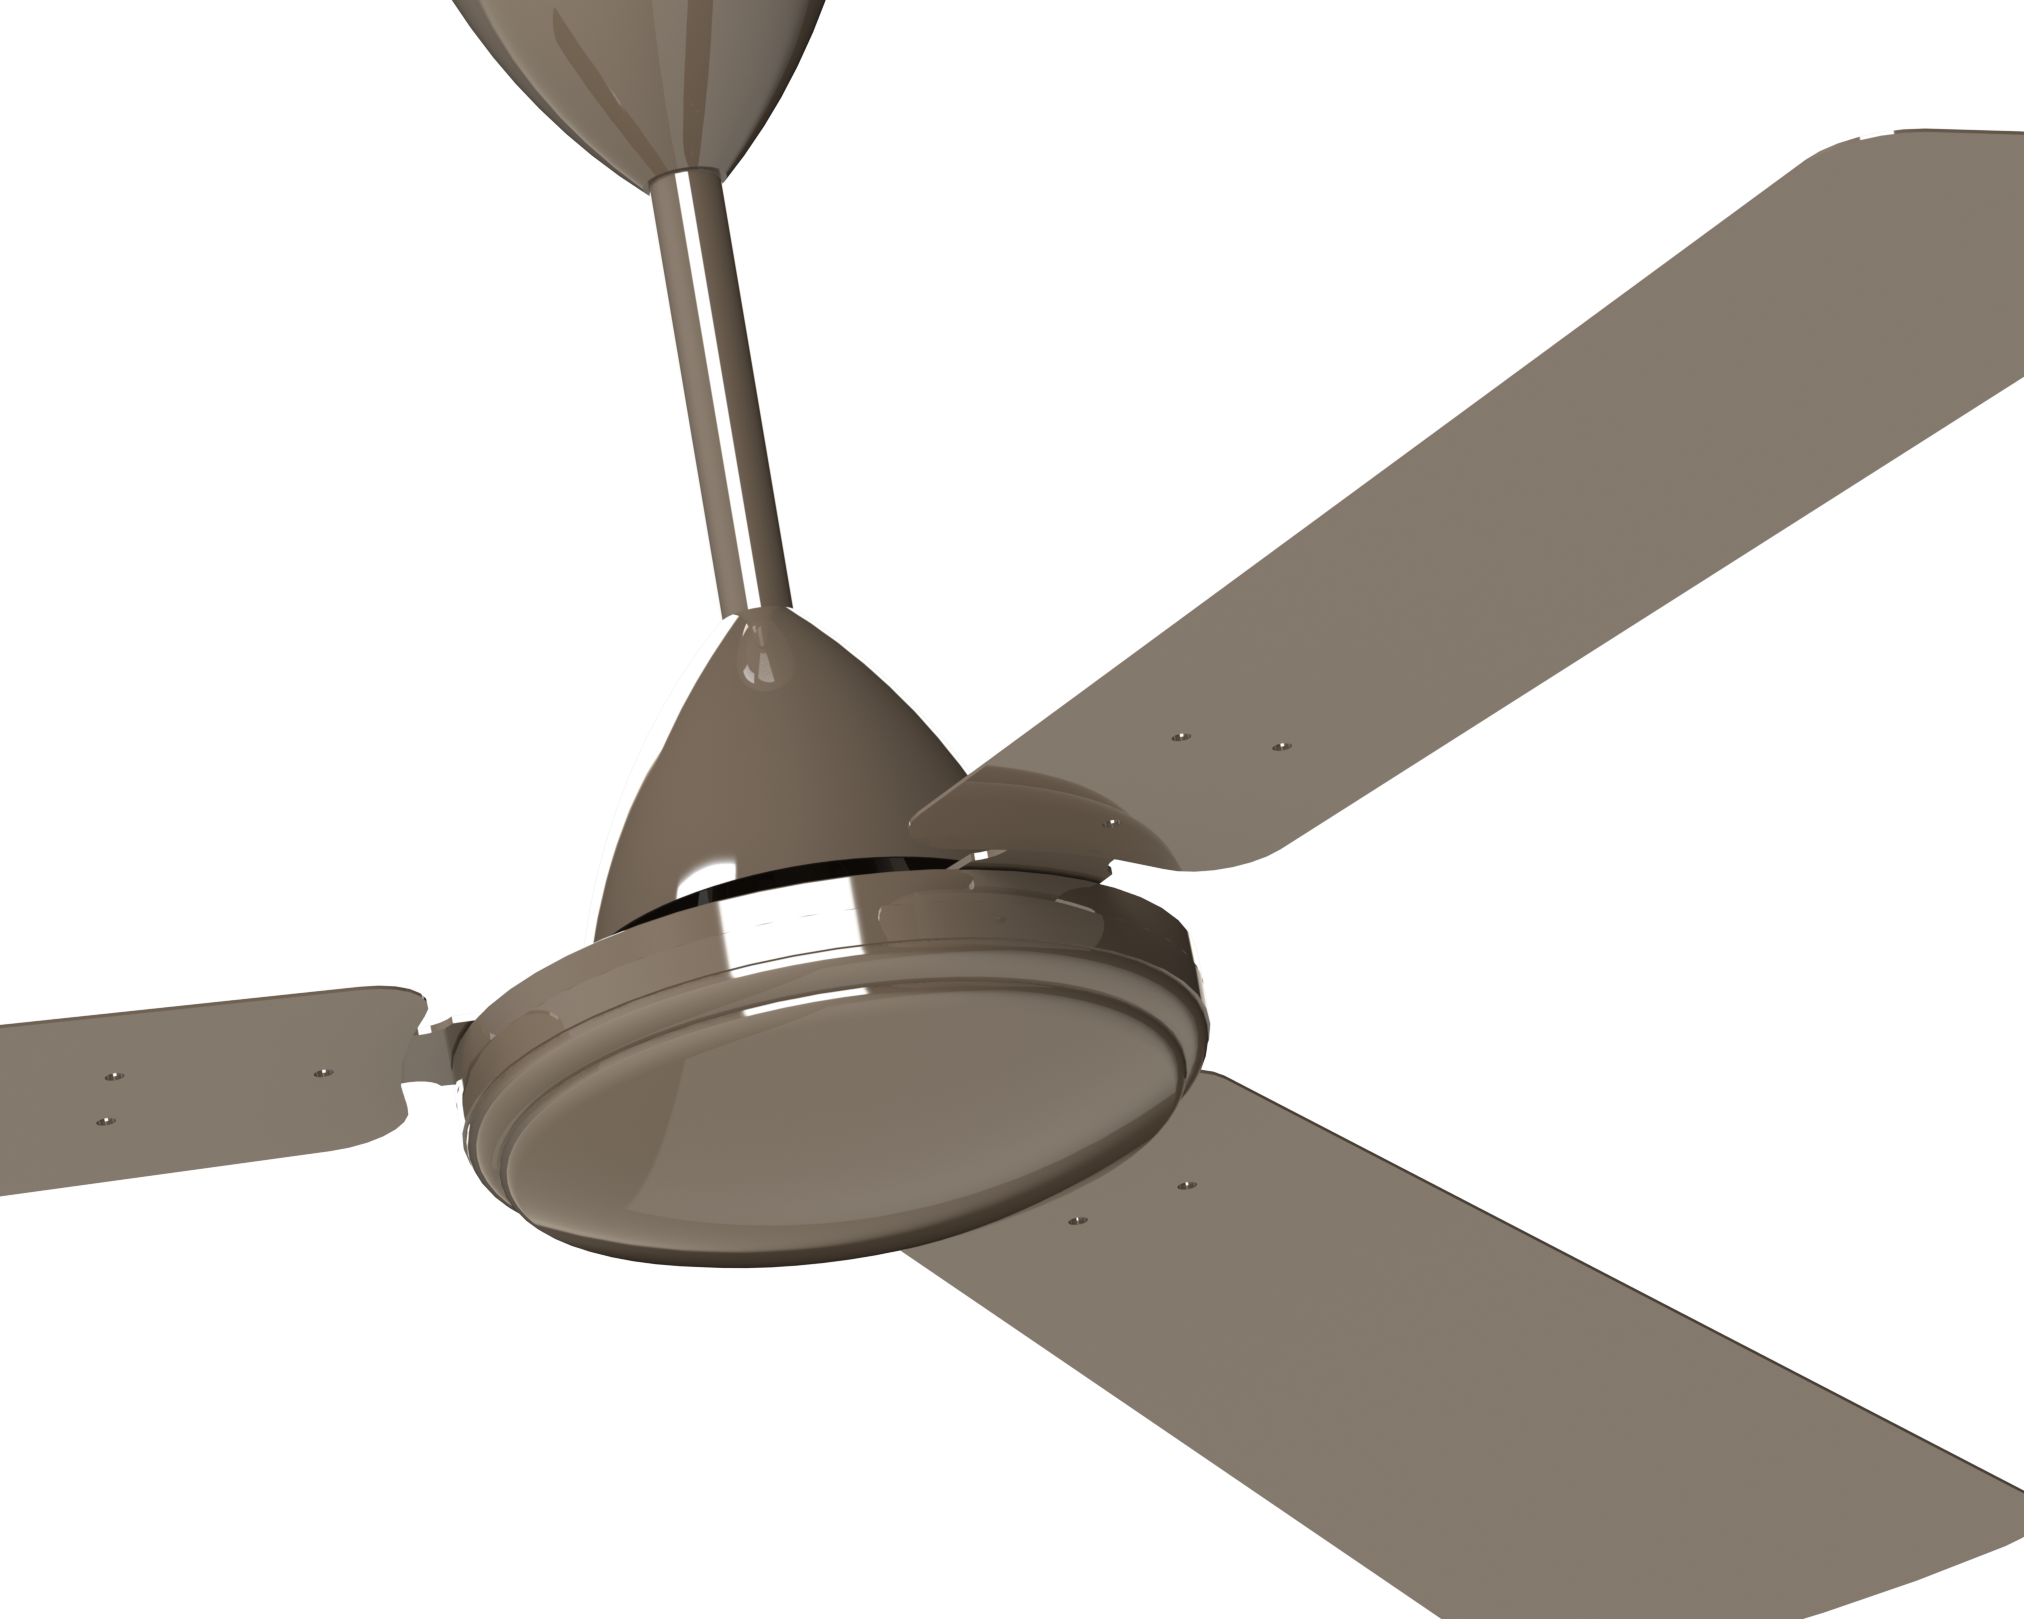 Typical Ceiling Fan Power Consumption Ceiling Fans Ideas